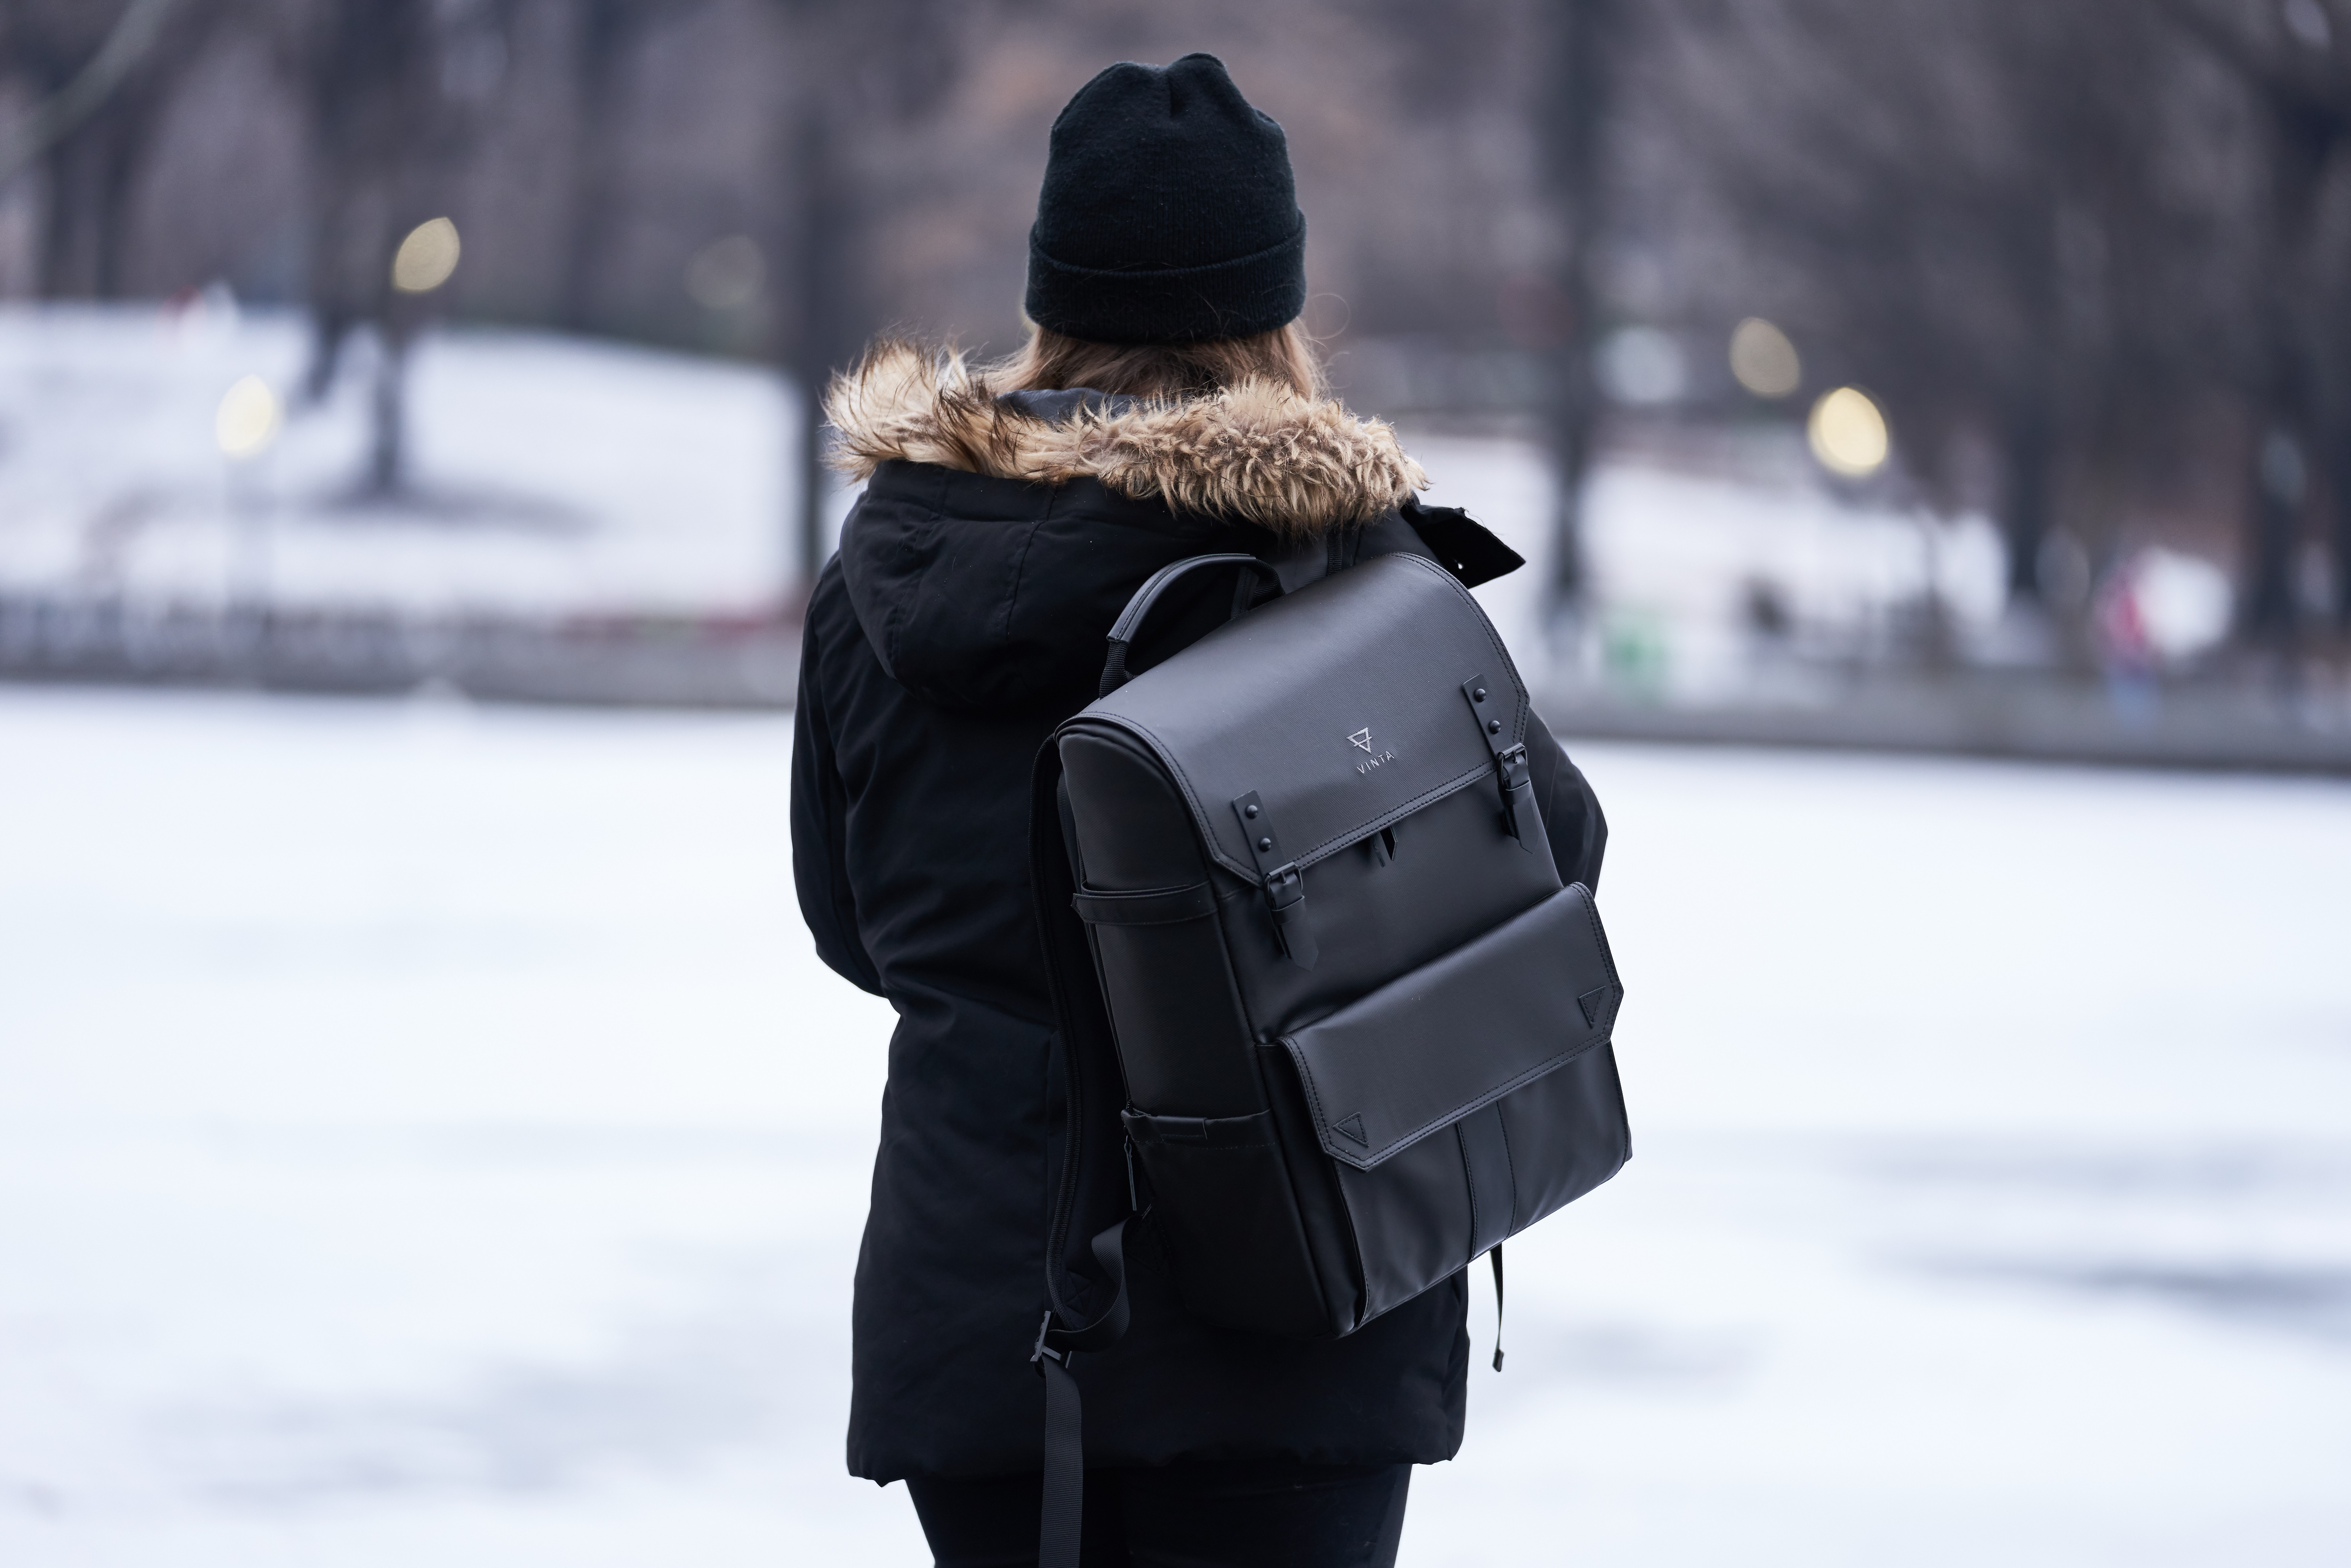 Woman wearing parka and carrying backpack during winter photo